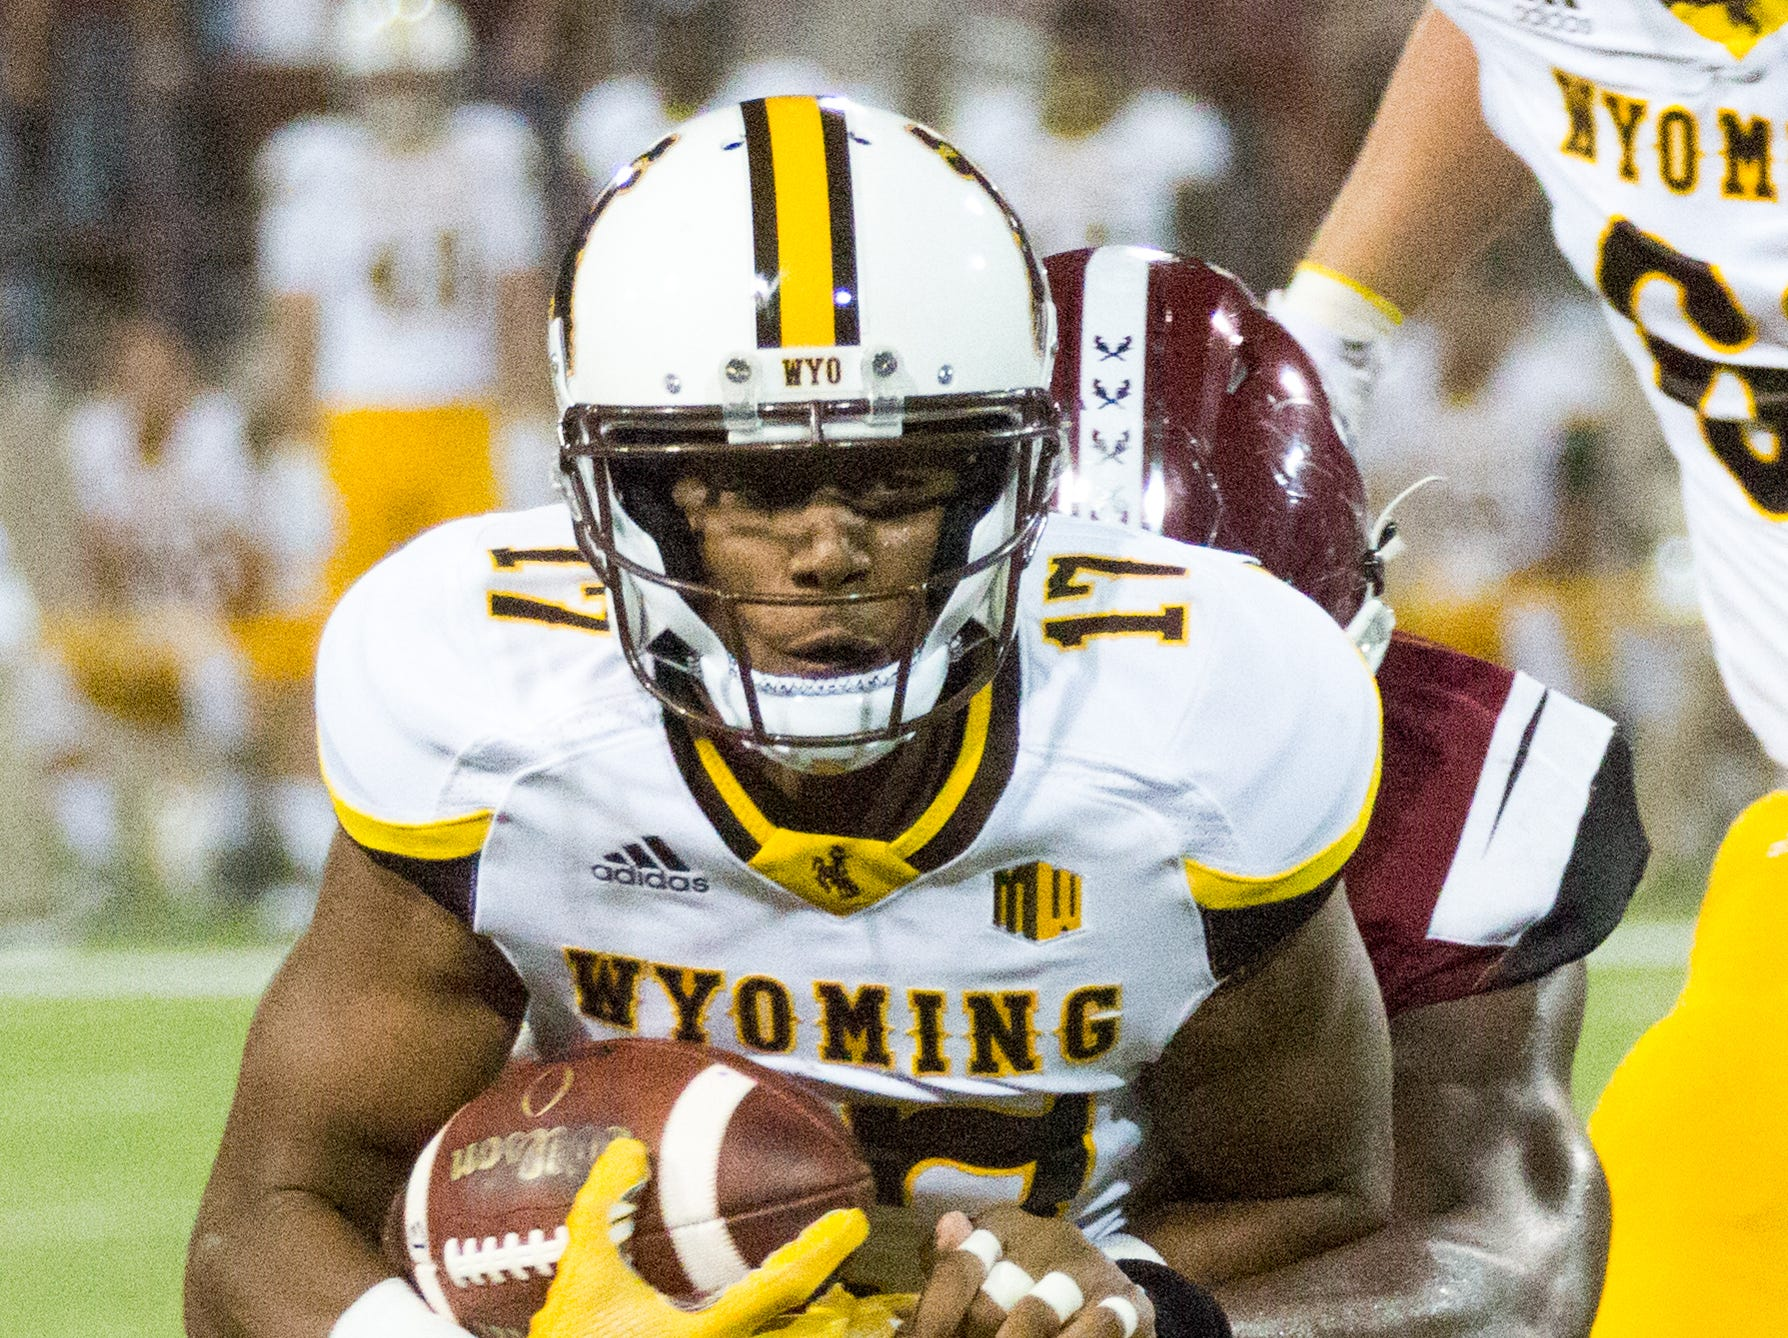 Wyoming's Raghib Ismail Jr. runs for yards while being wrapped up by an NMSU defender on Saturday, August 25, 2018, during the NMSU/Wyoming game at the Aggie Memorial Stadium.